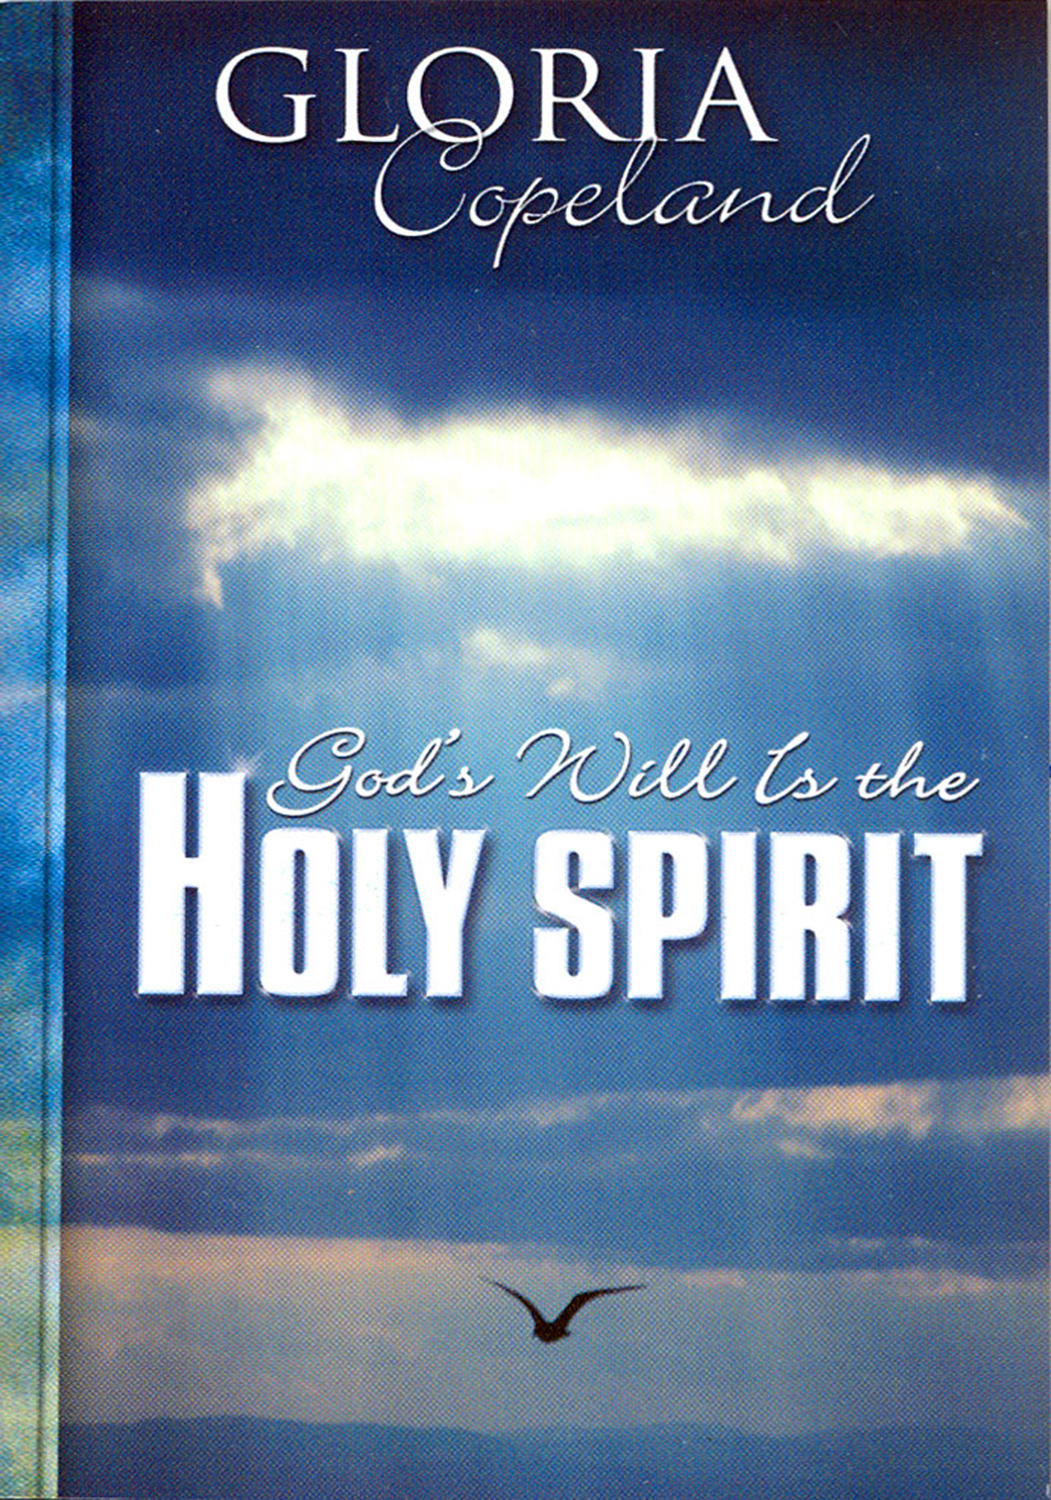 God's Will is the Holy Spirit By: Gloria Copeland